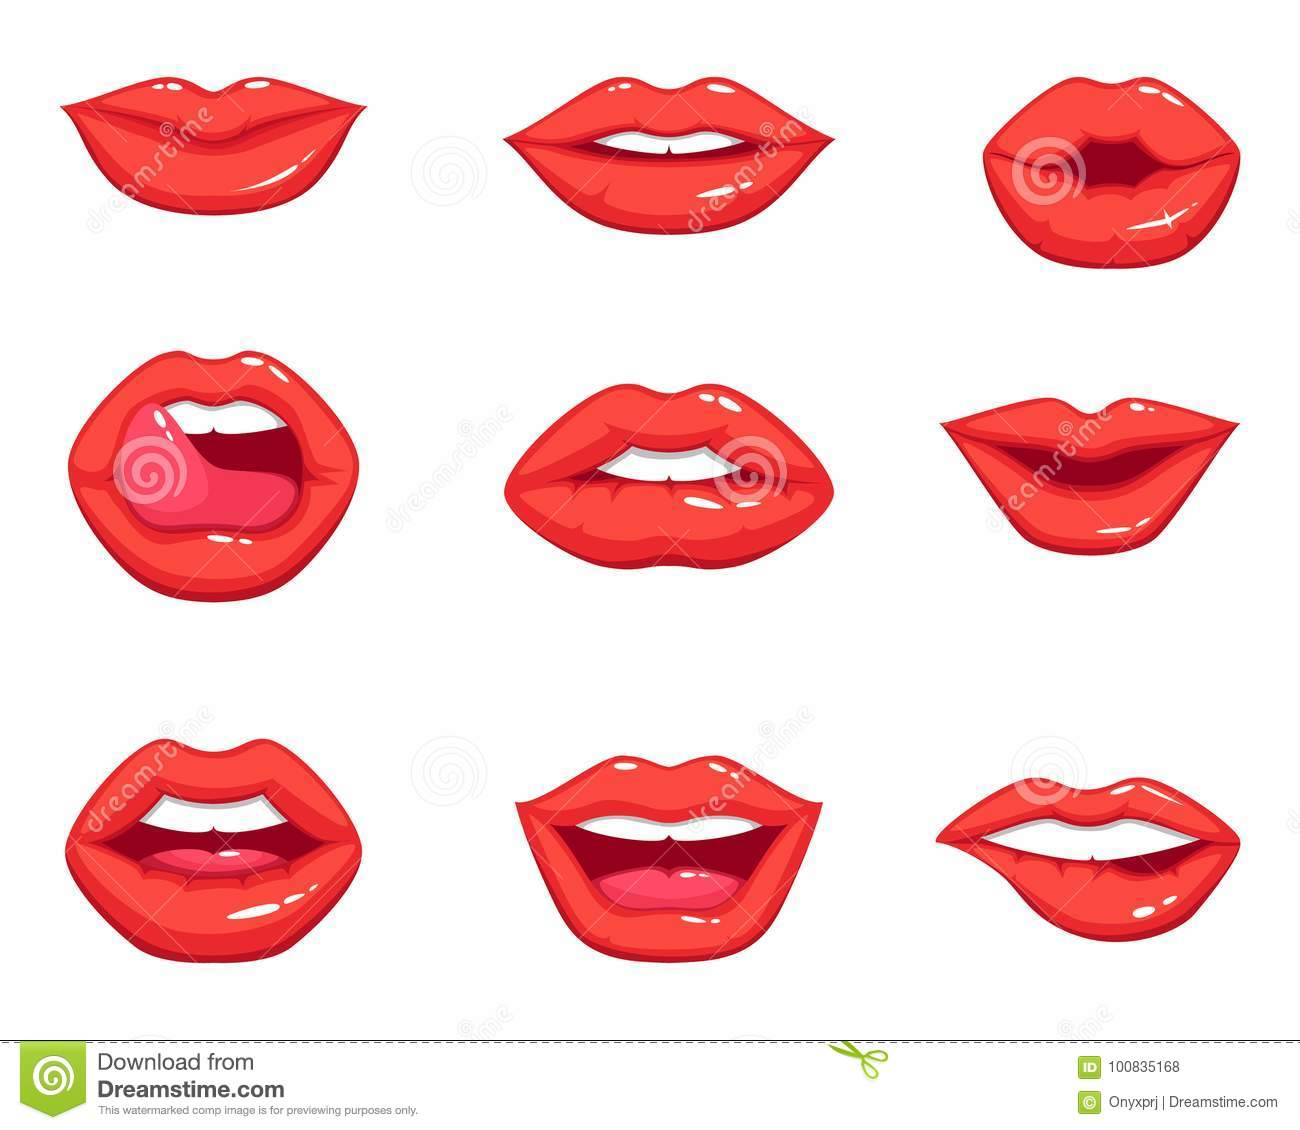 Different Makeups Of Kiss: Different Shapes Of Female Red Lips. Vector Illustrations